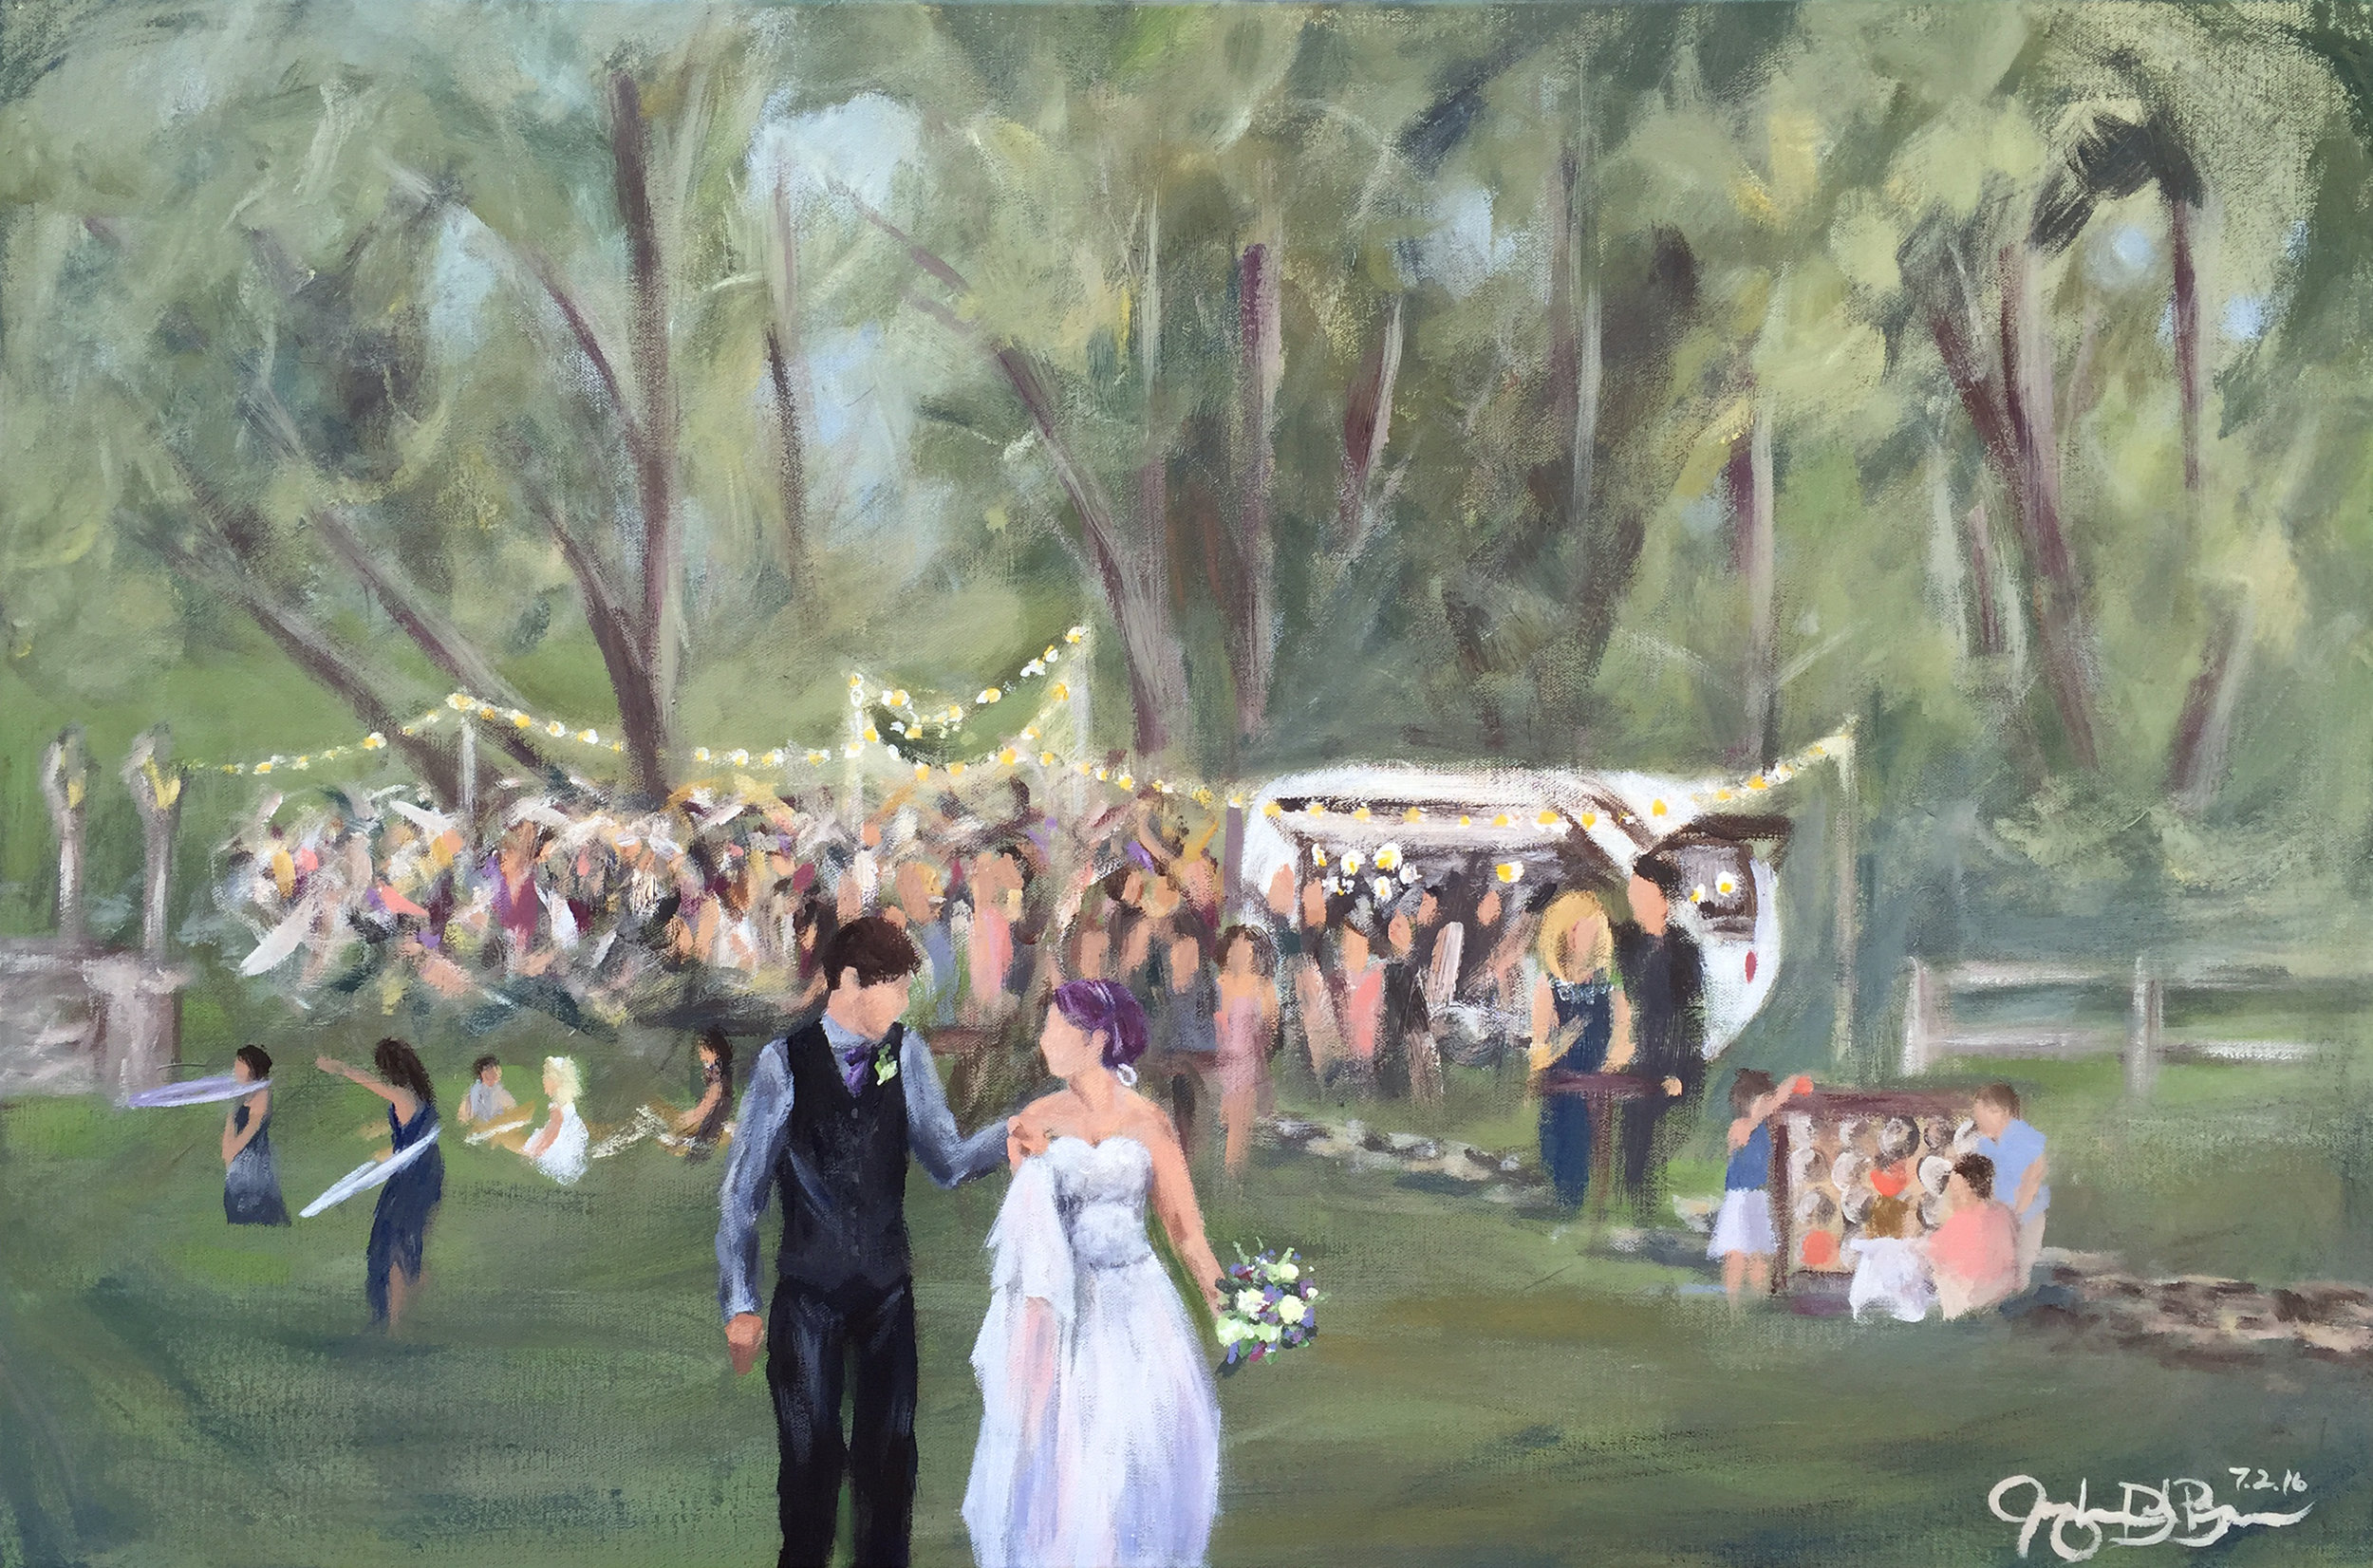 The completed live wedding painting - A unique and special wedding gift capturing the memory of a truly magical day!